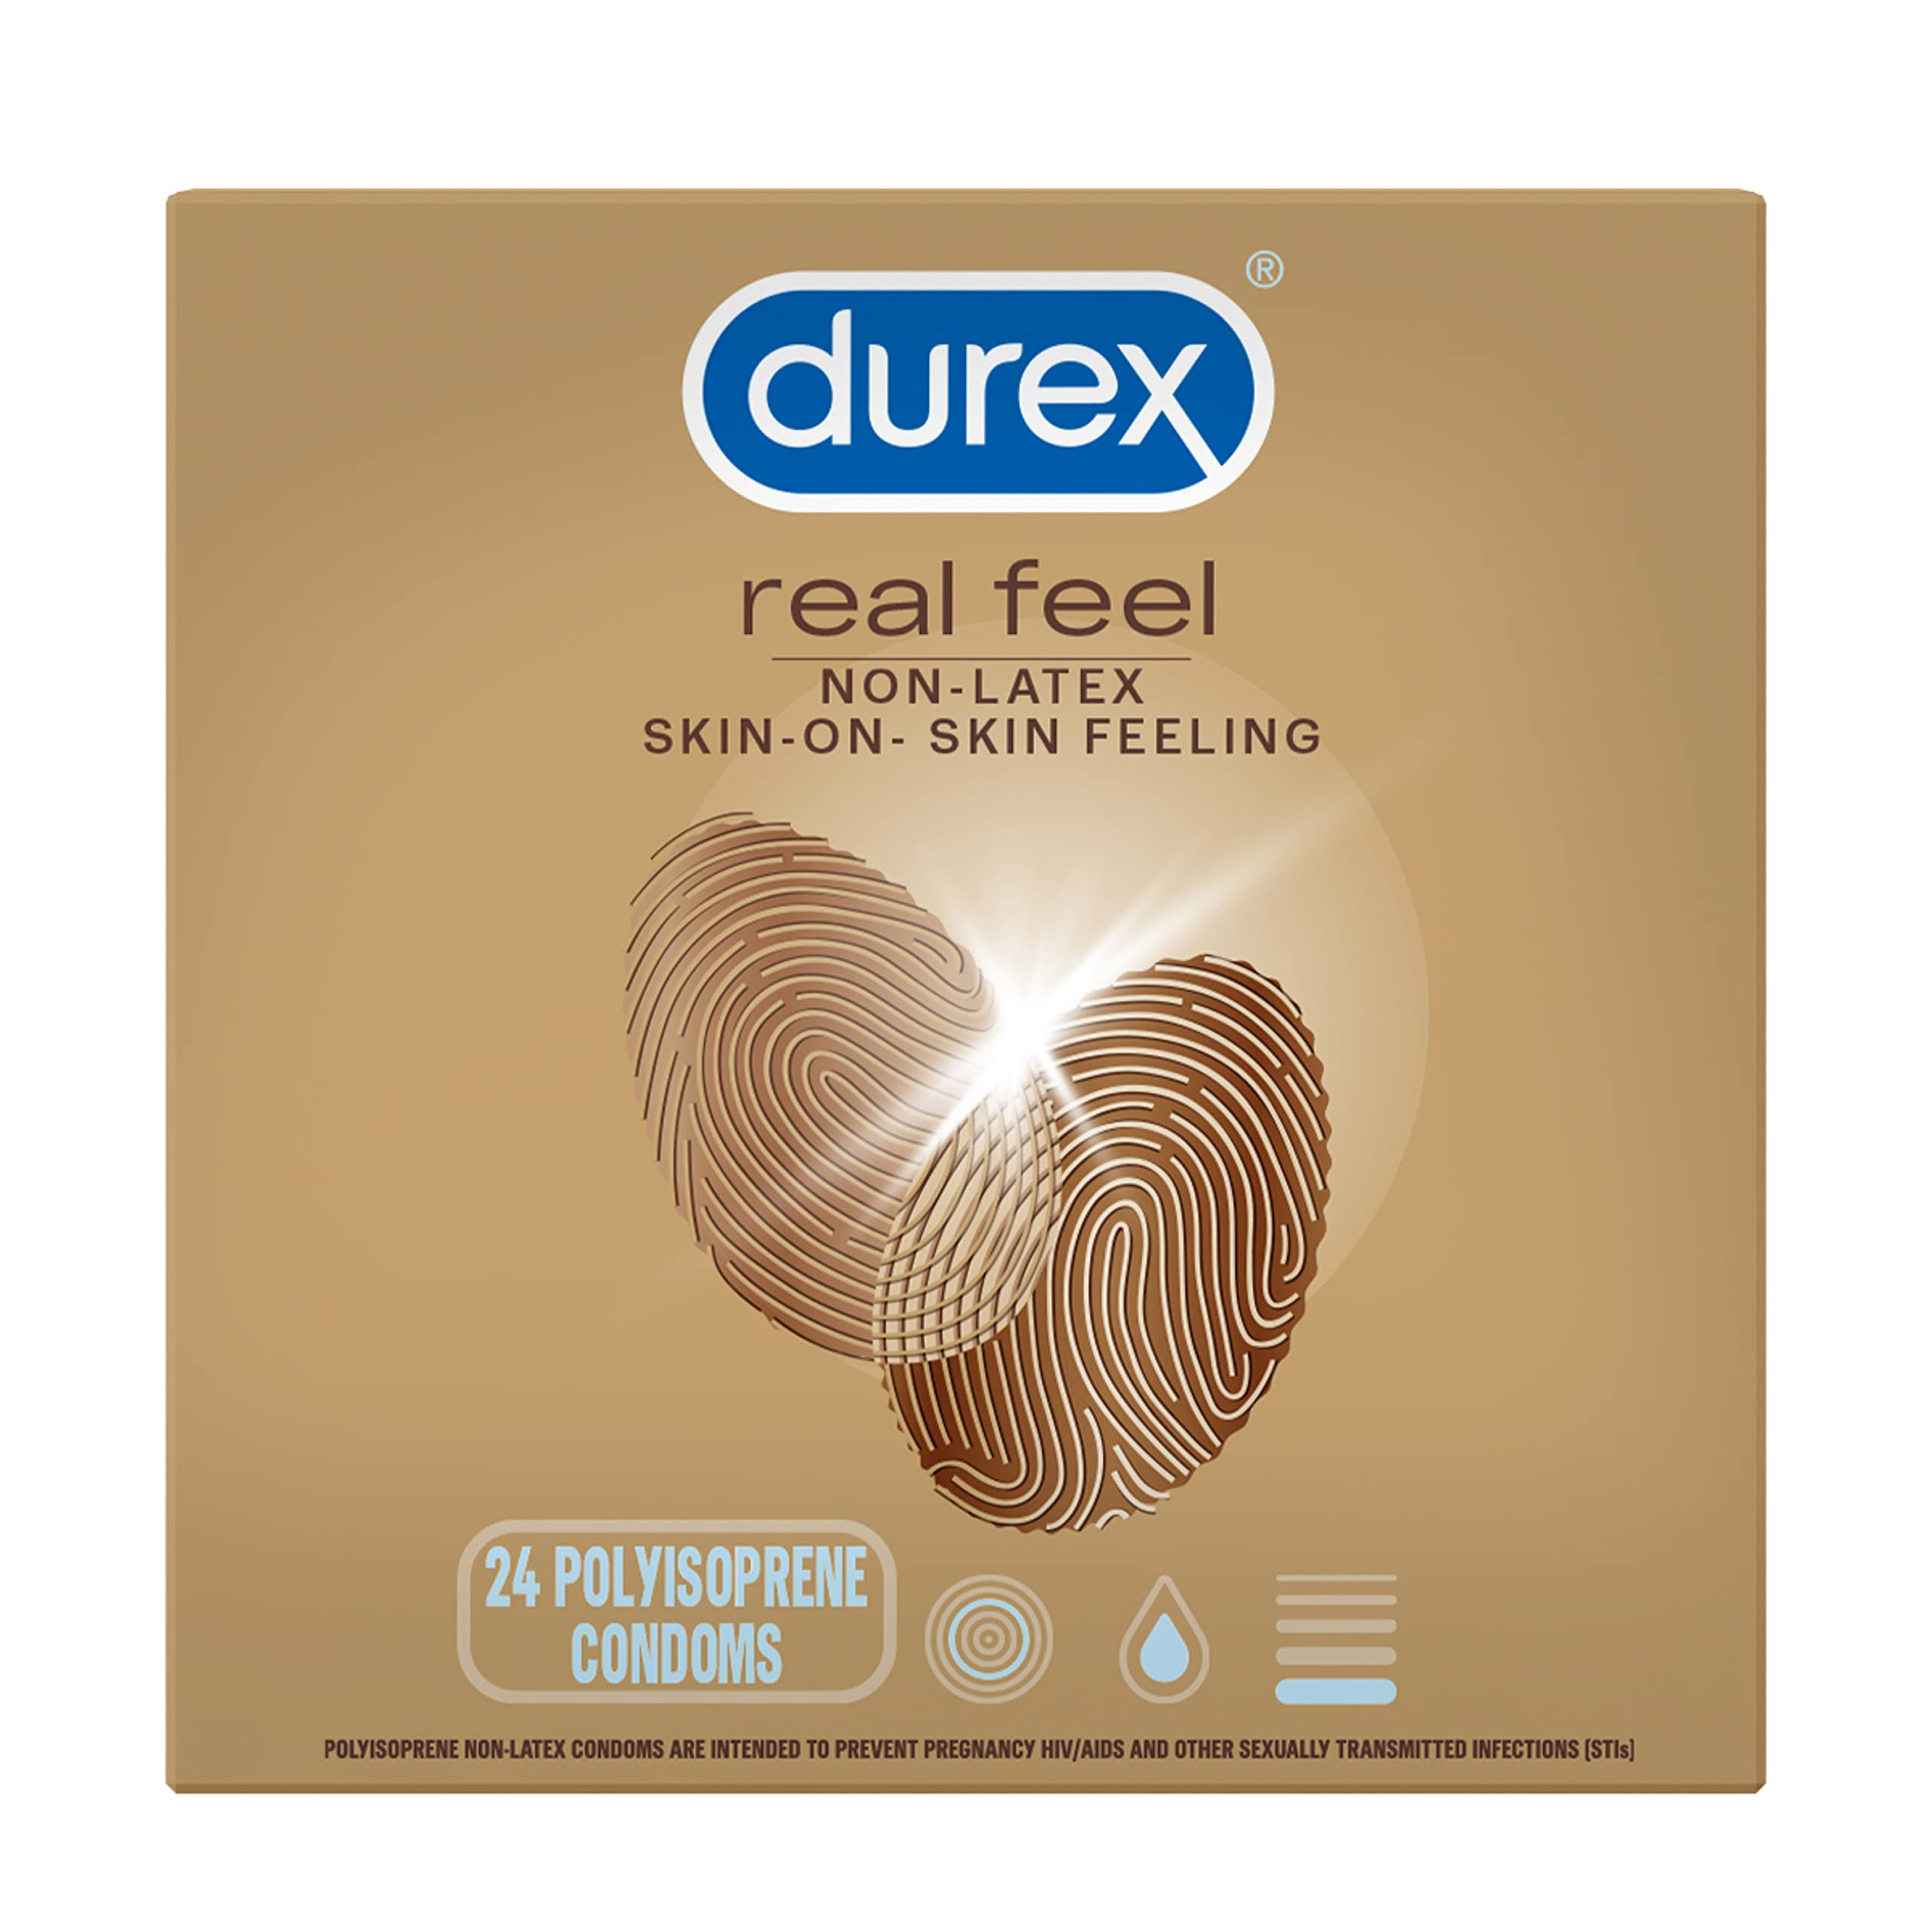 Condoms for Sex, Non Latex Durex Avanti Bare Real Feel Lubricated Condoms, 24 Count, Non Latex Condoms for Men with Natural Skin on Skin Feeling, FSA & HSA Eligible